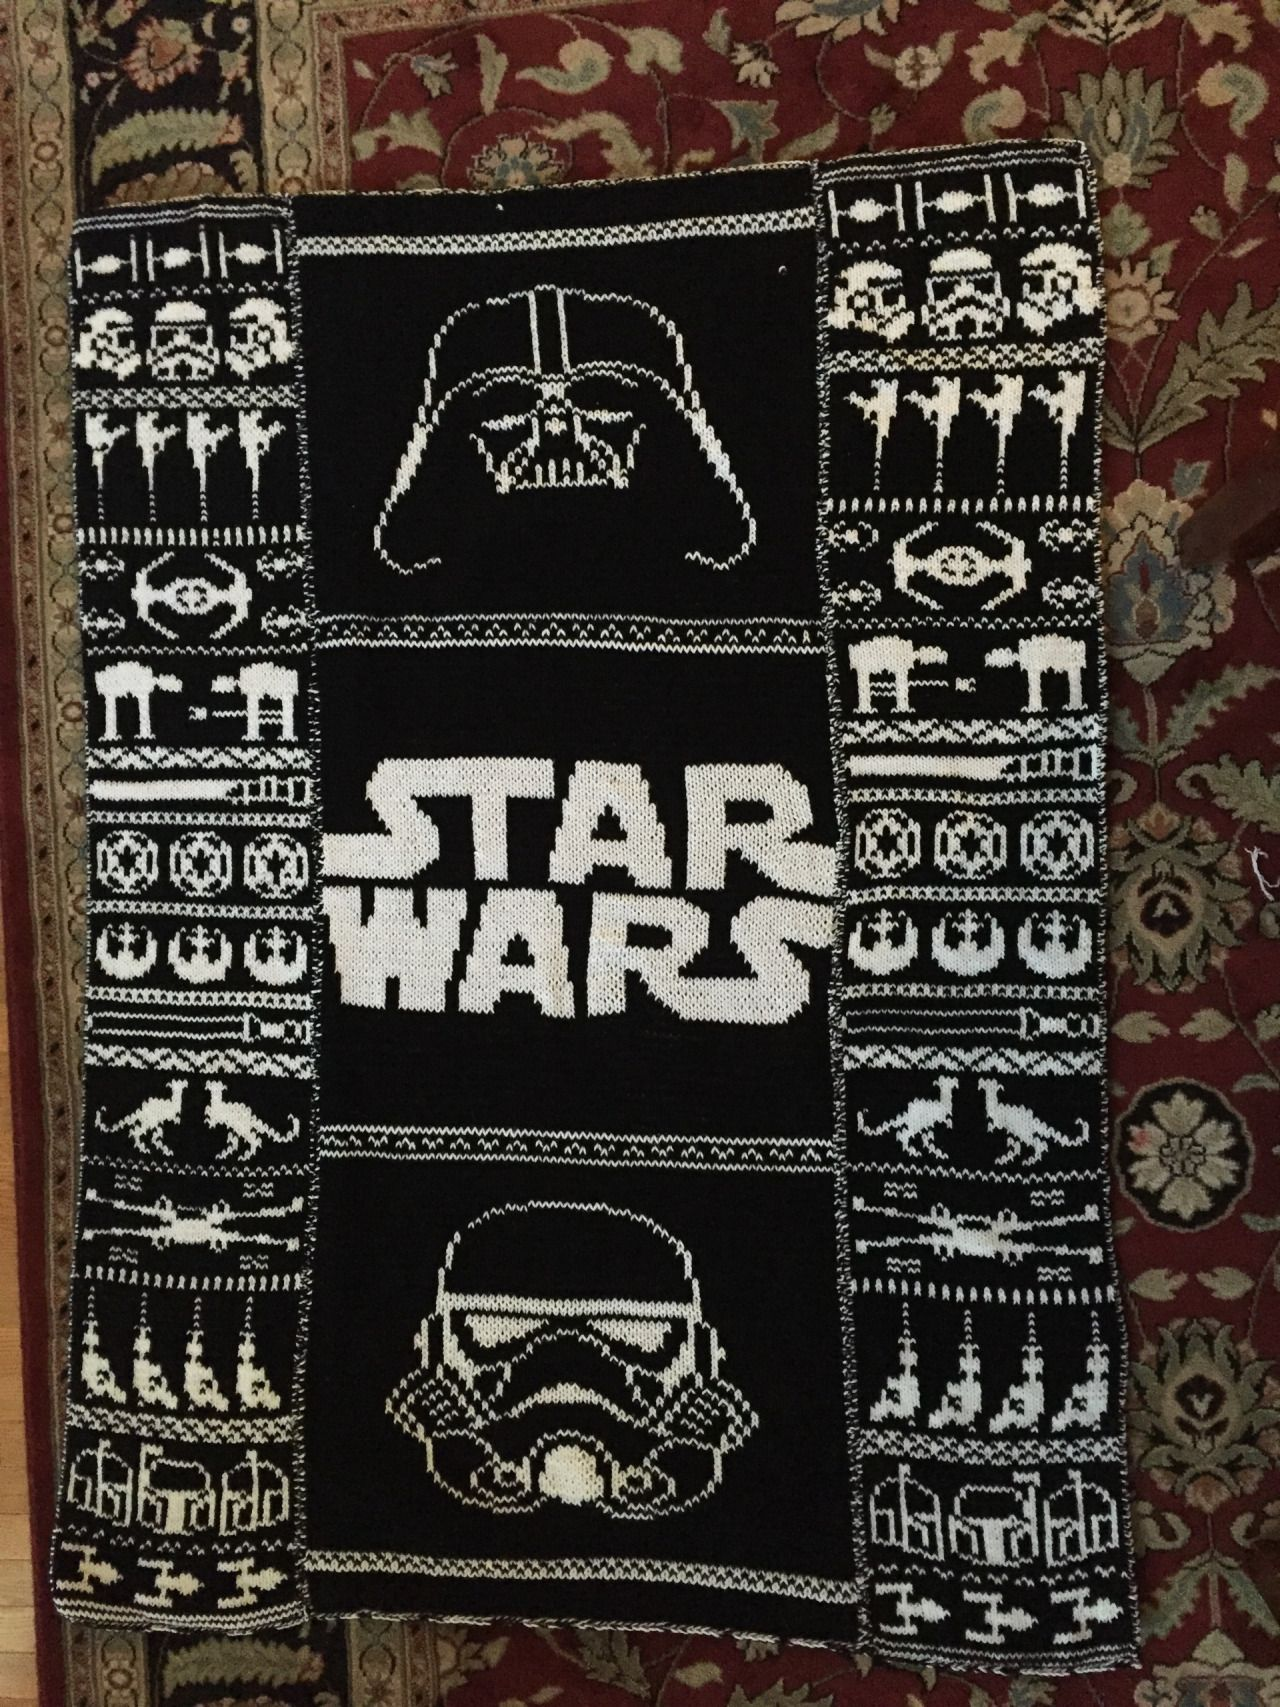 Super Cool Star Wars Blanket I Saw On Tumblr The Patterns Are